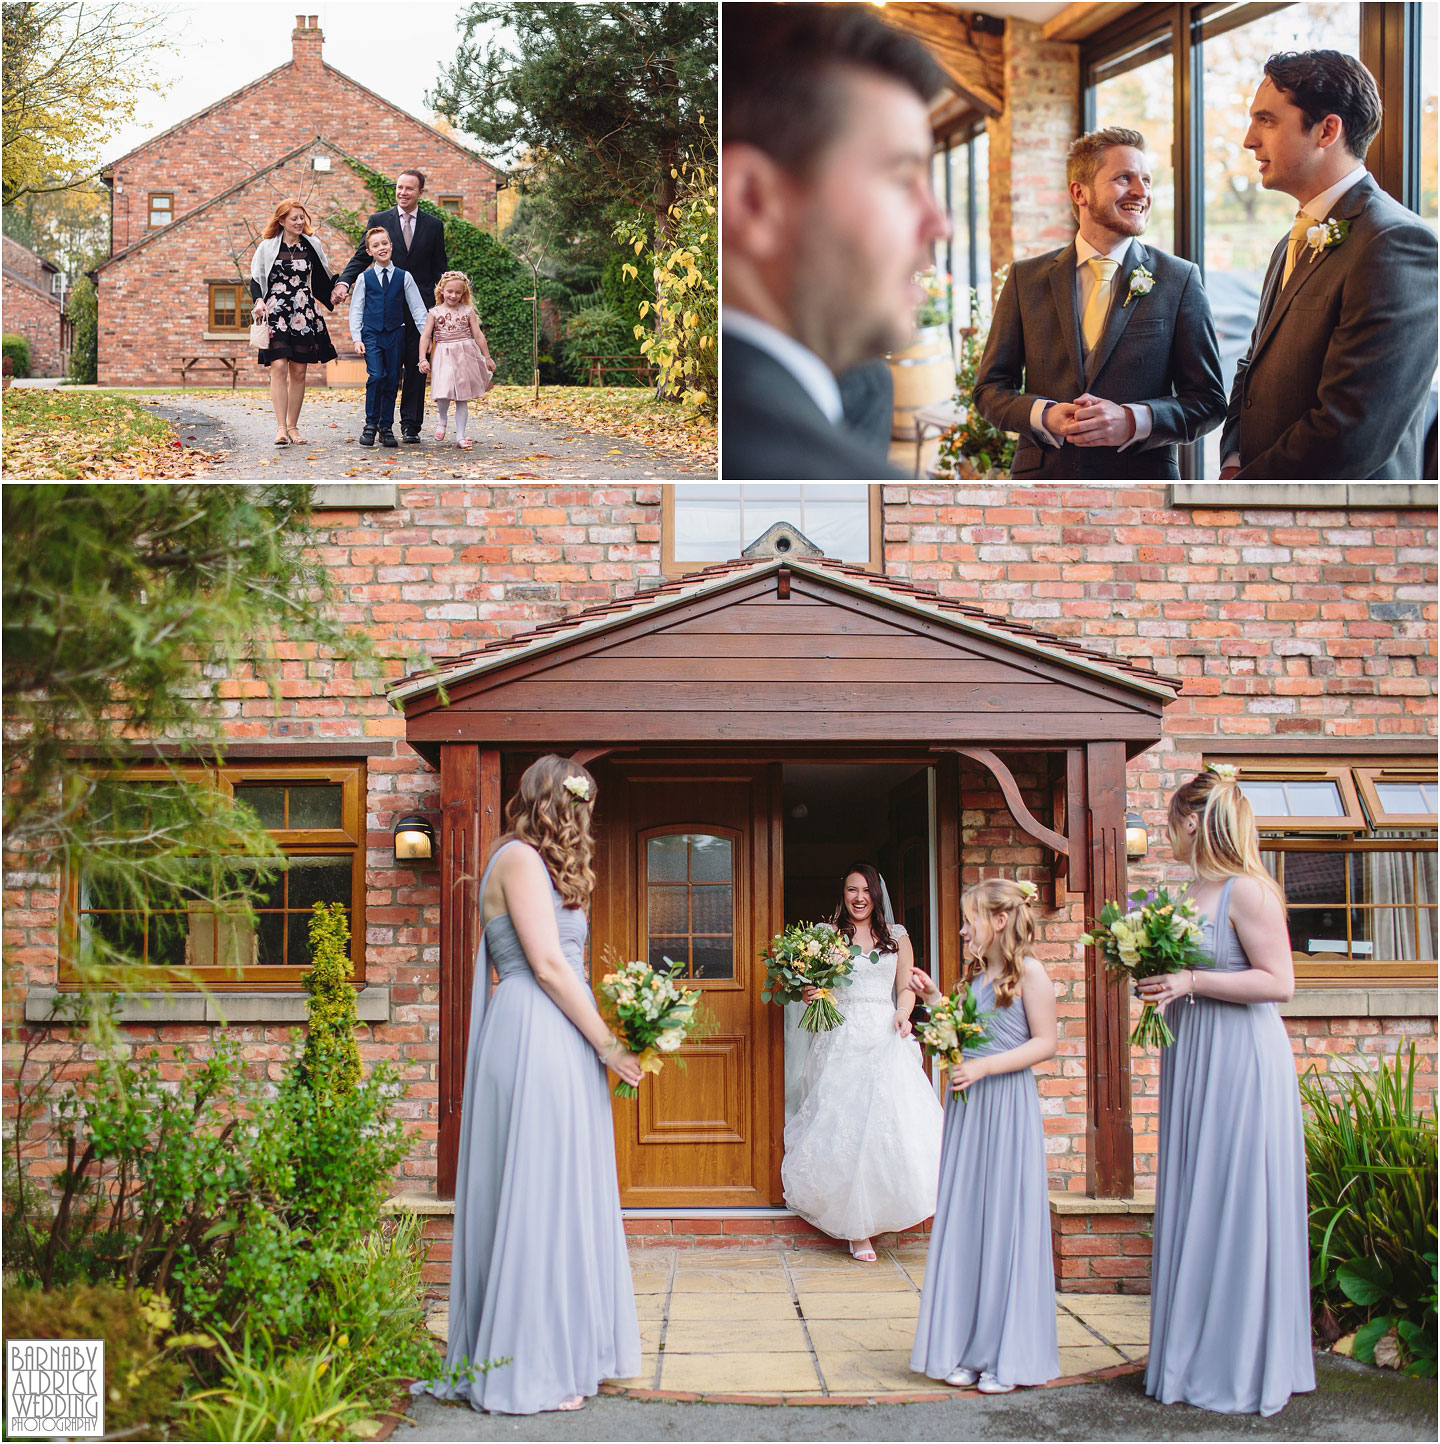 Villa Farm Wedding Photos, York unusual wedding venues, York Barn wedding venue, York Barn wedding at Villa Farm